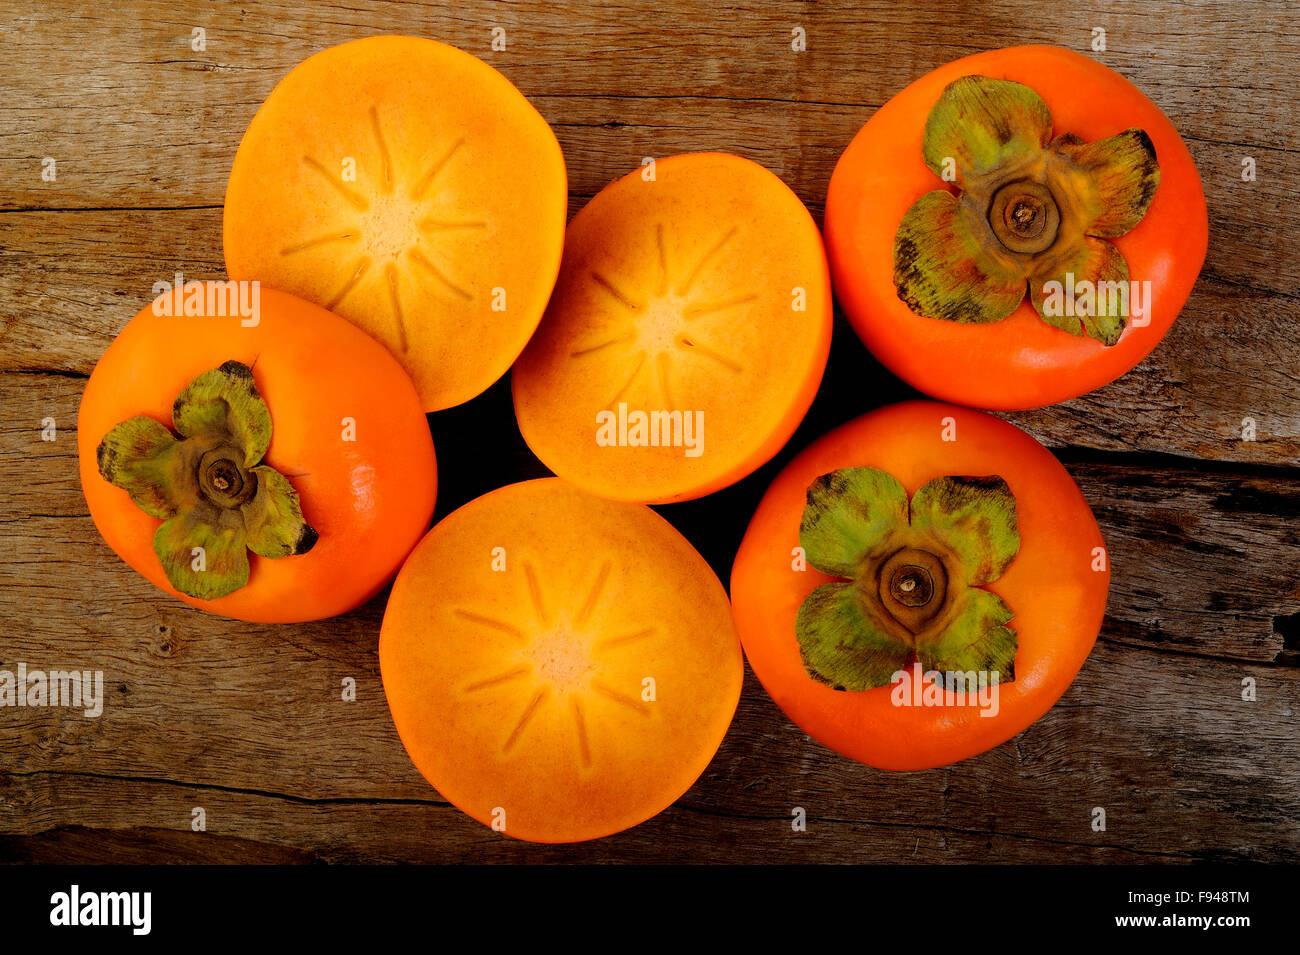 slice persimmon fruit on wooden background - Stock Image